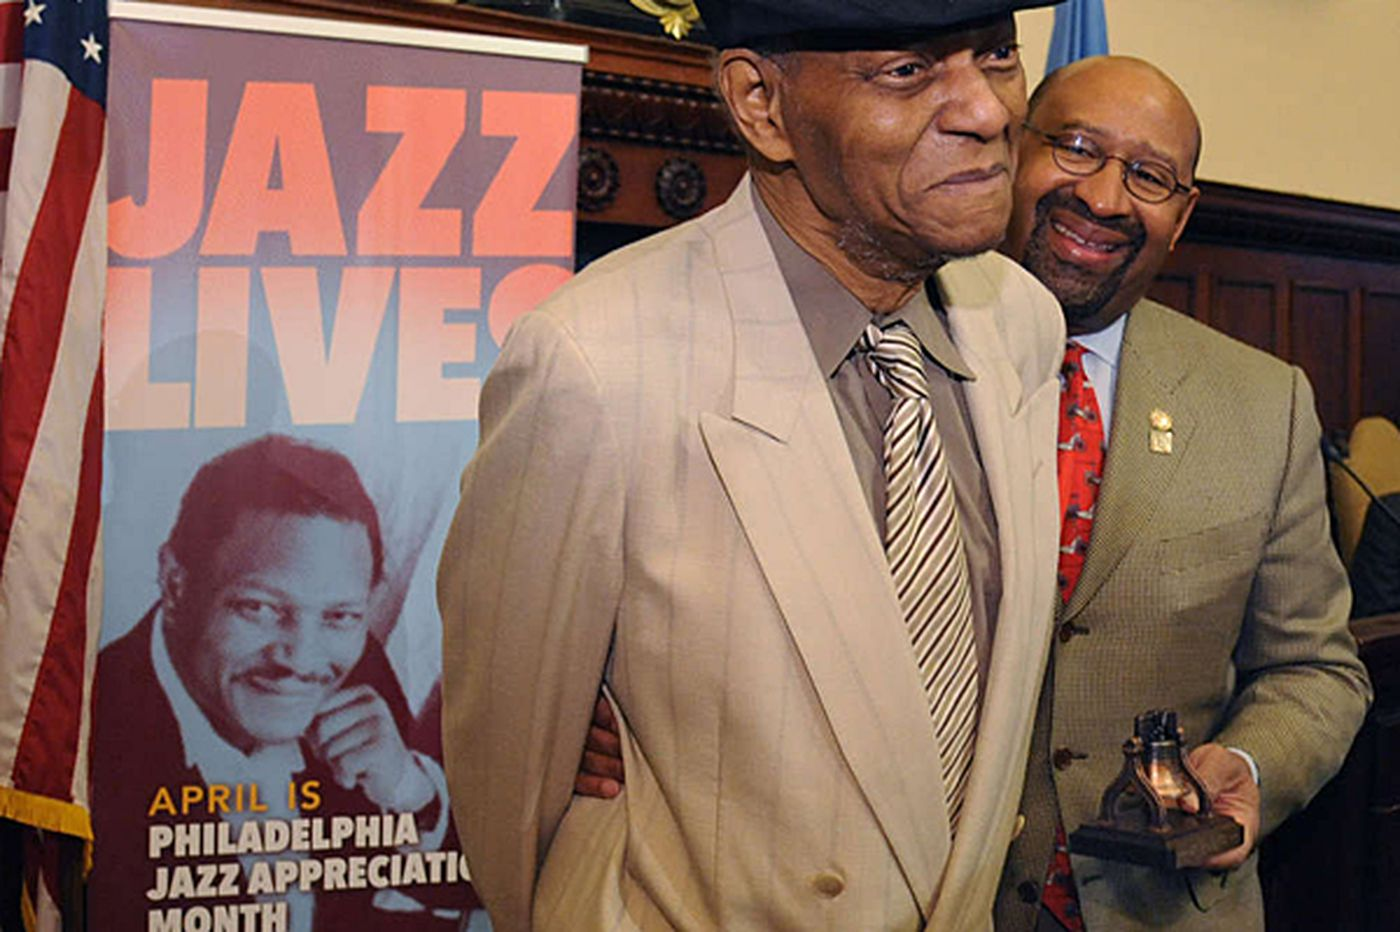 Philly names a 'Jazz Legend'